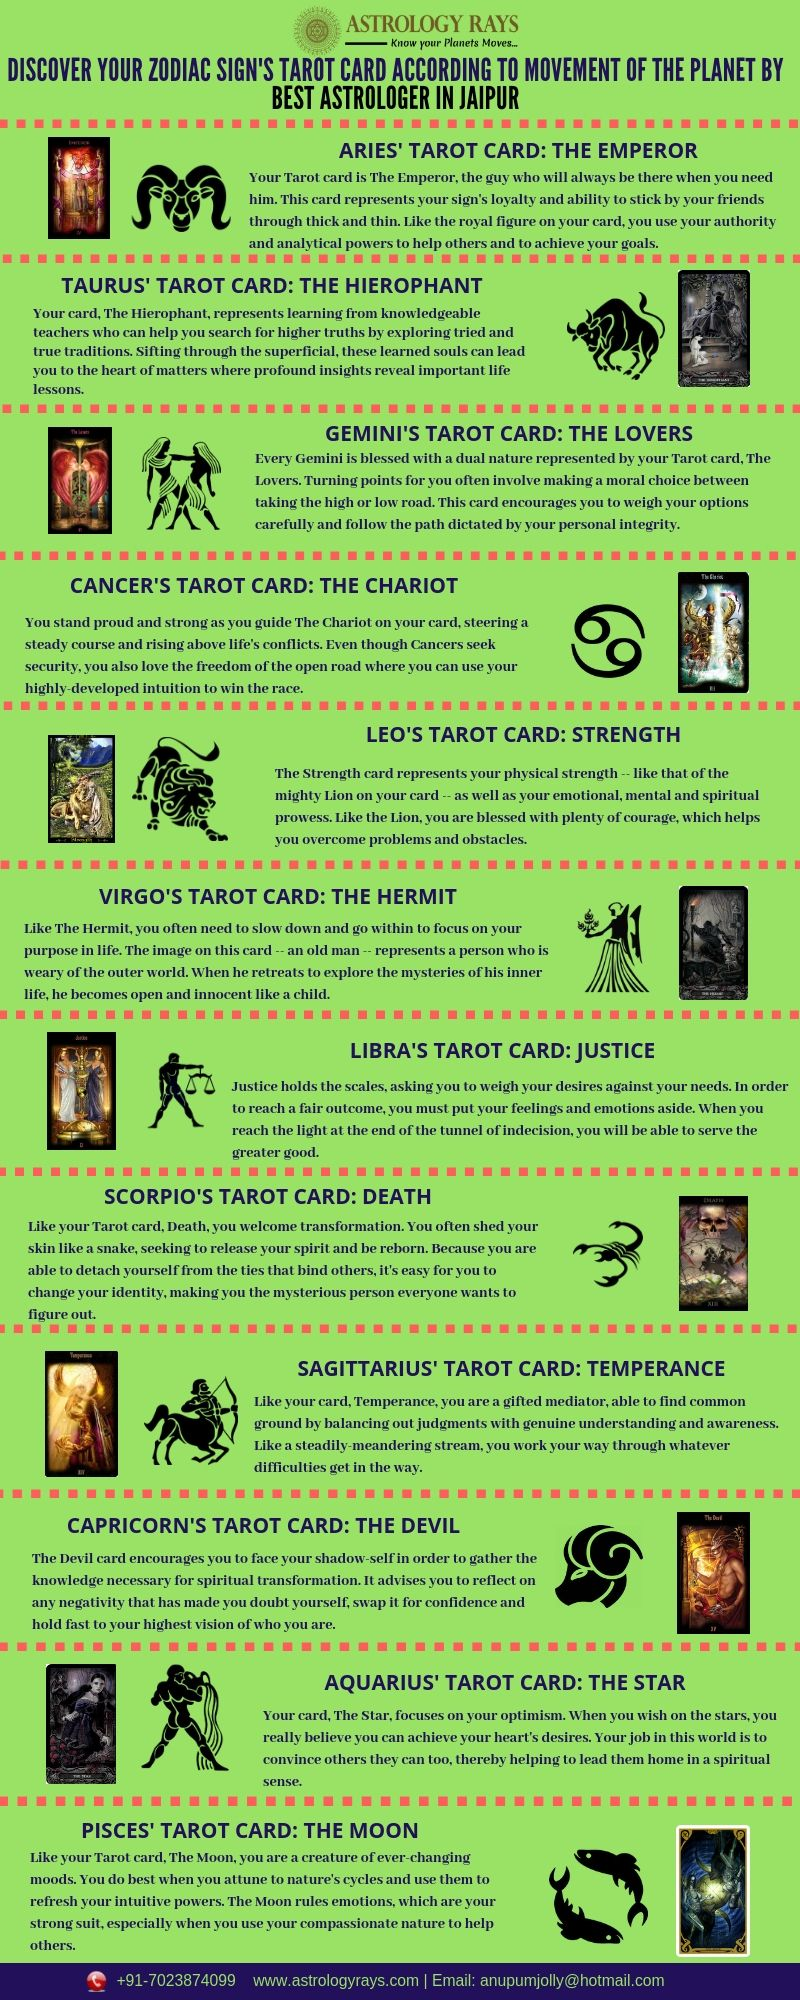 Discover your zodiac signs tarot card with images